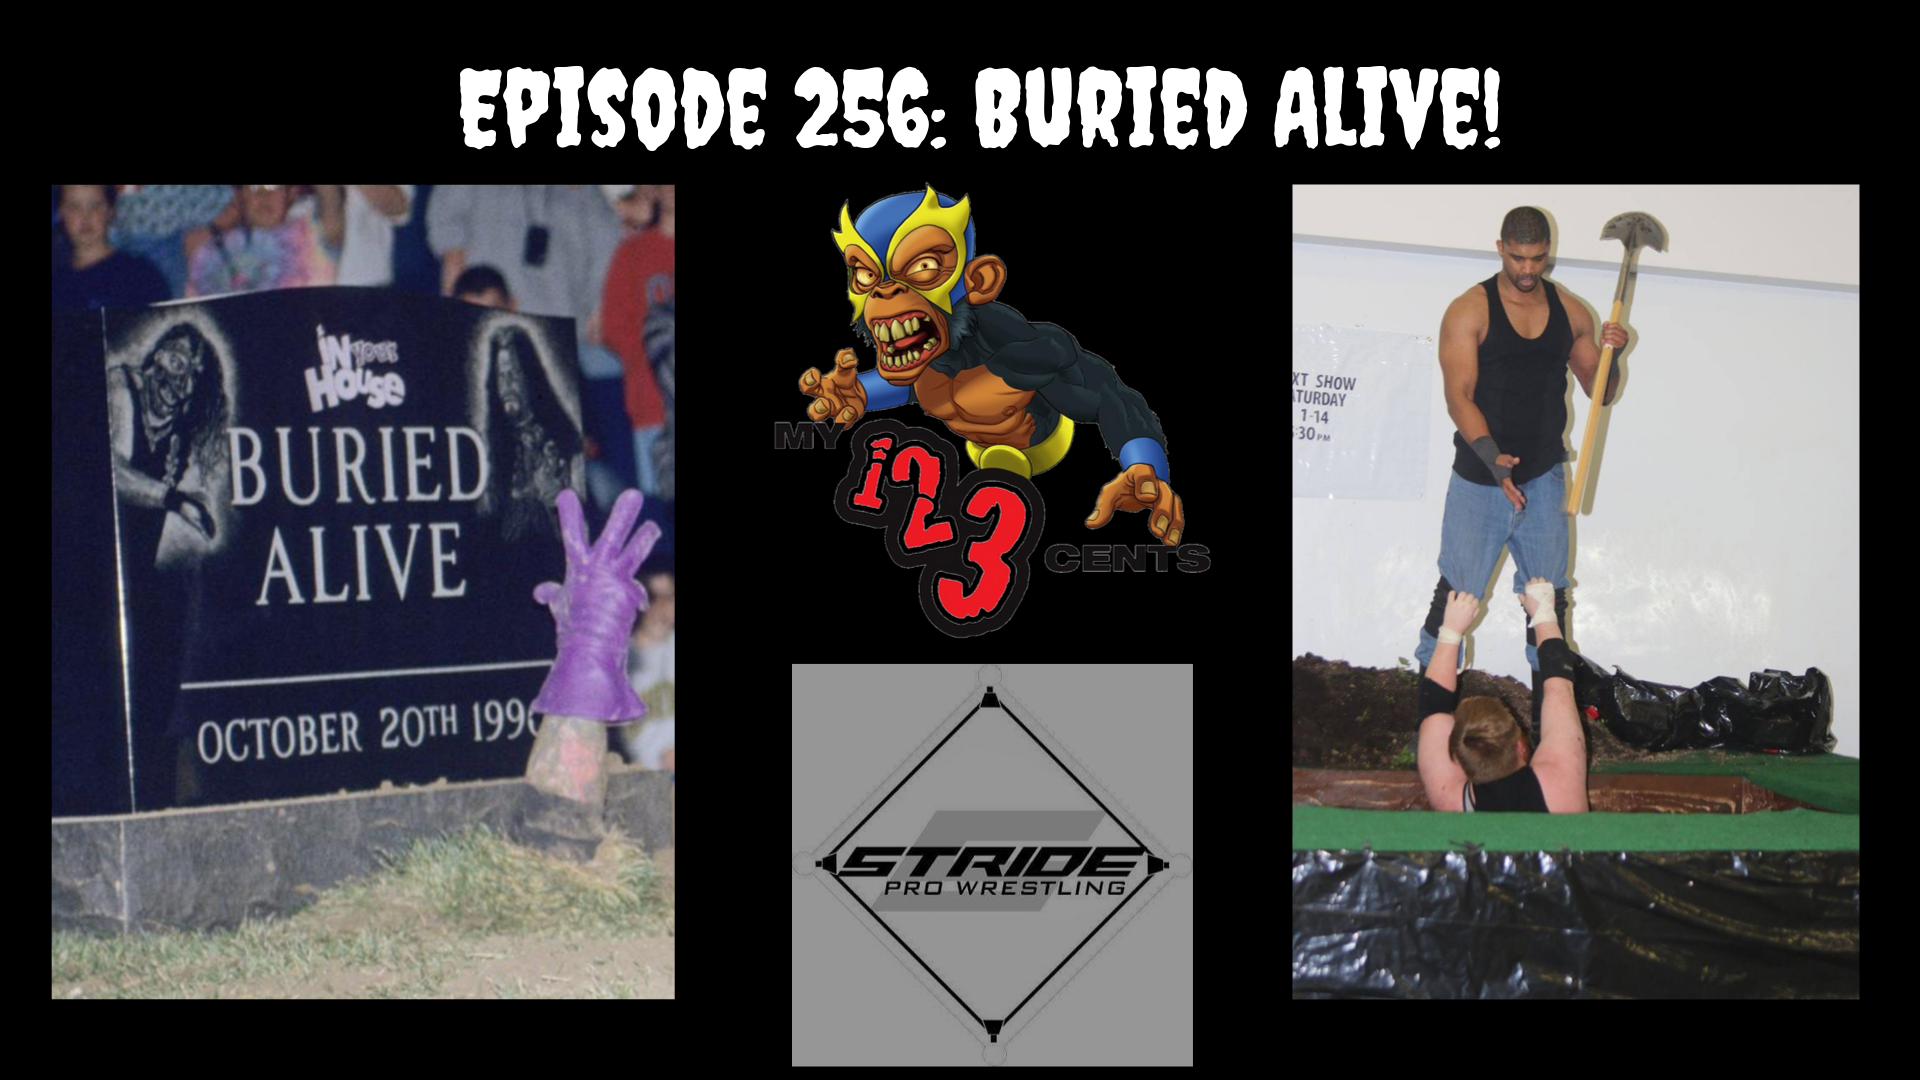 My 1-2-3 Cents Episode 256: Buried Alive